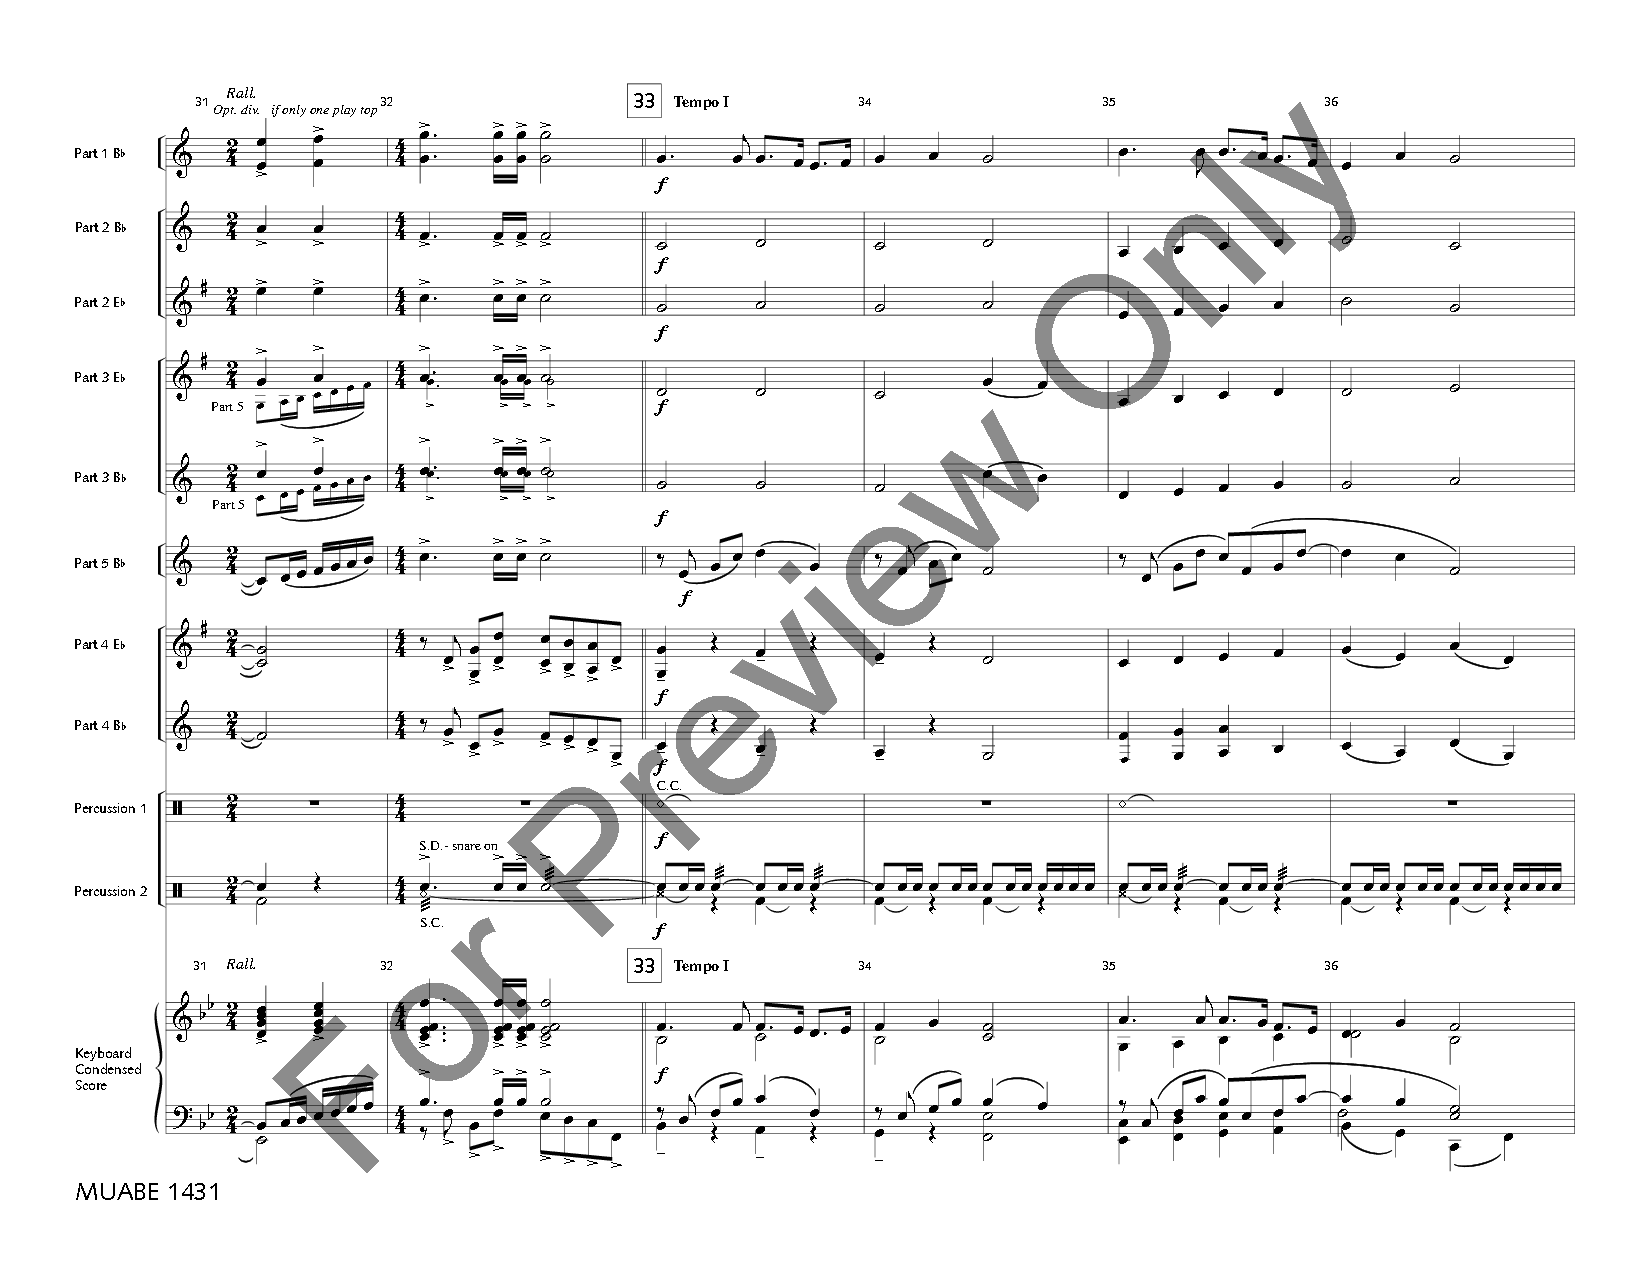 At Calvary by James Curnow| J.W. Pepper Sheet Music